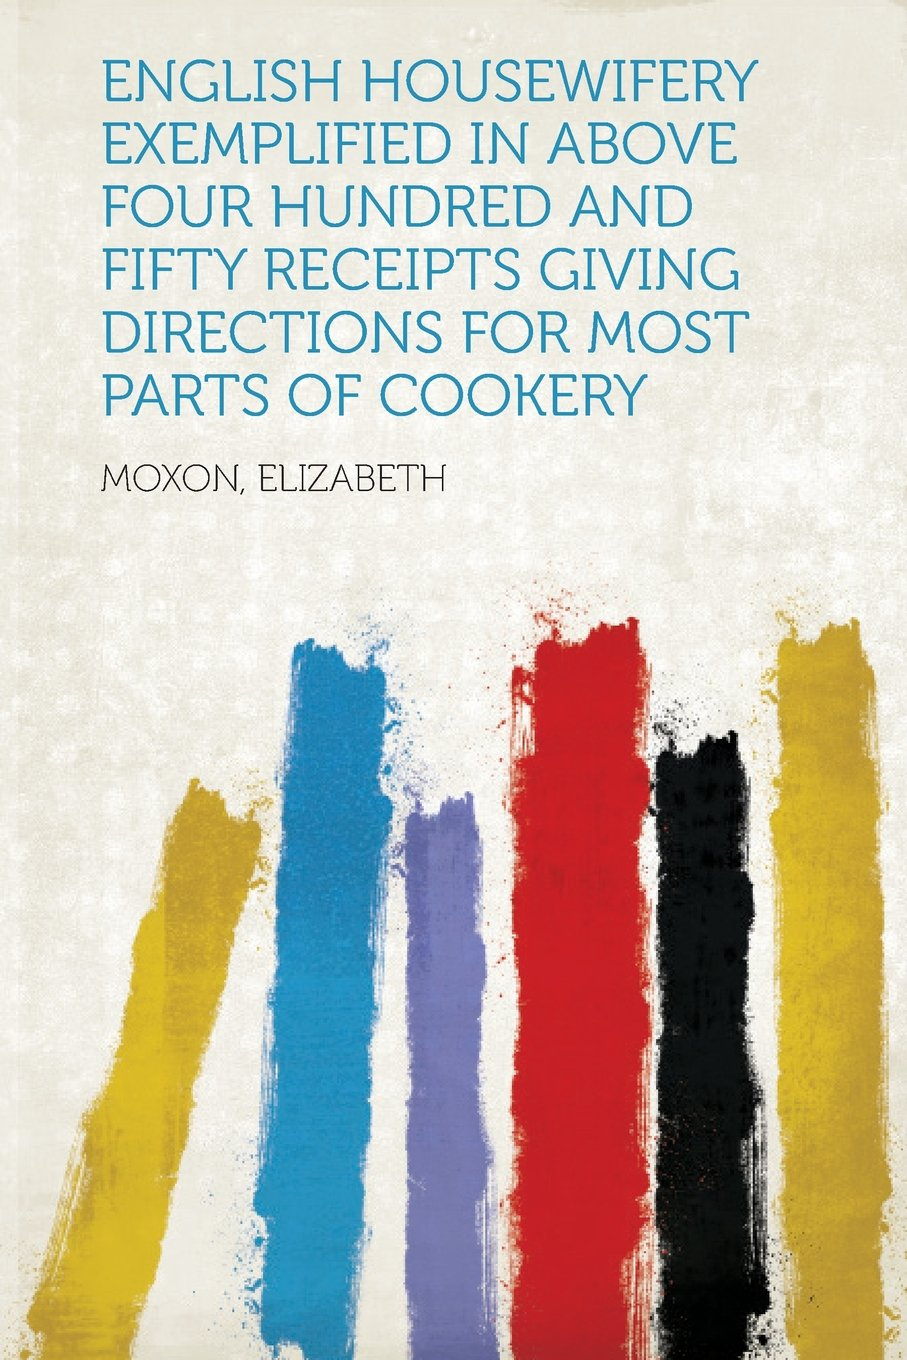 English Housewifery Exemplified in above Four Hundred and Fifty Receipts Giving Directions for most Parts of Cookery pdf